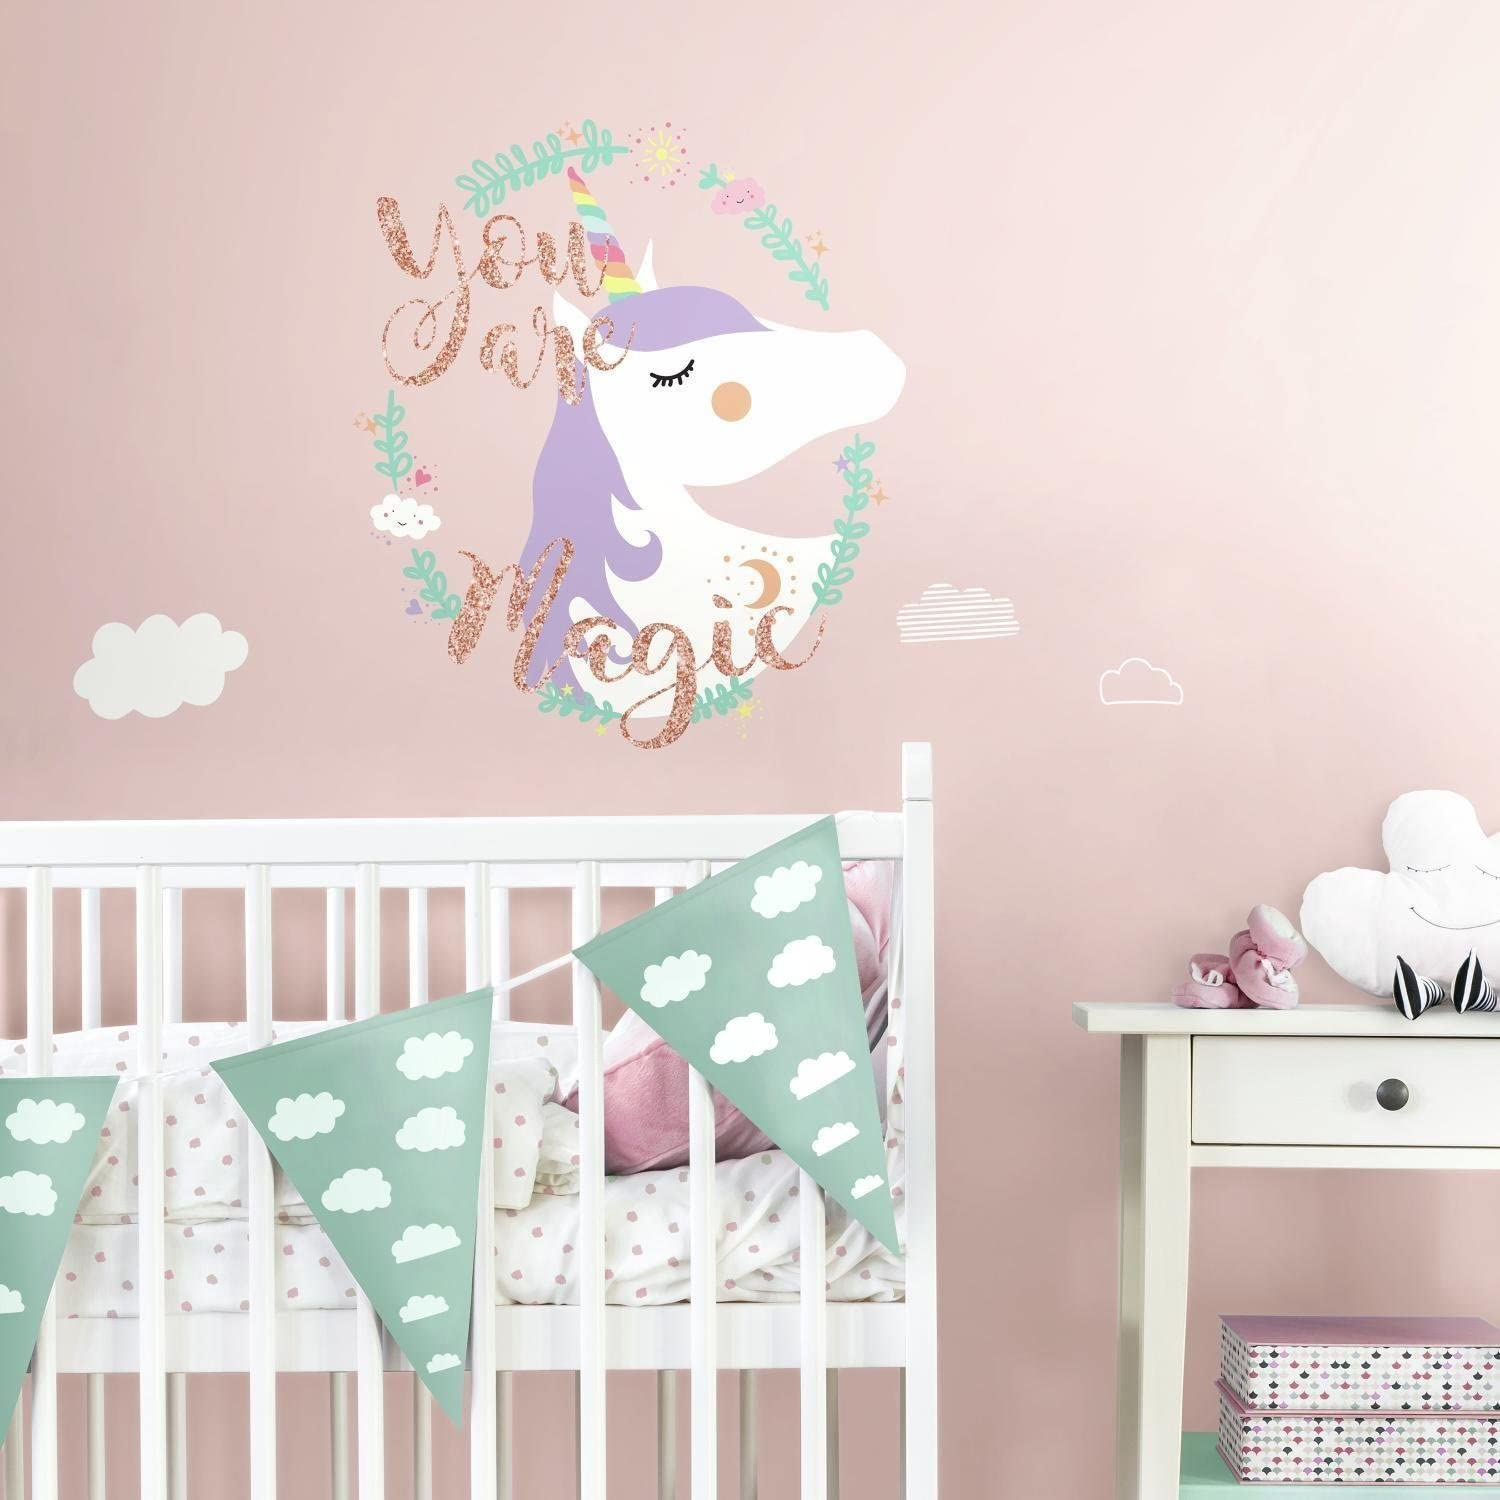 Girls Room Decor Roommates Magical Unicorn Peel And Stick Wallpaper Border Removable